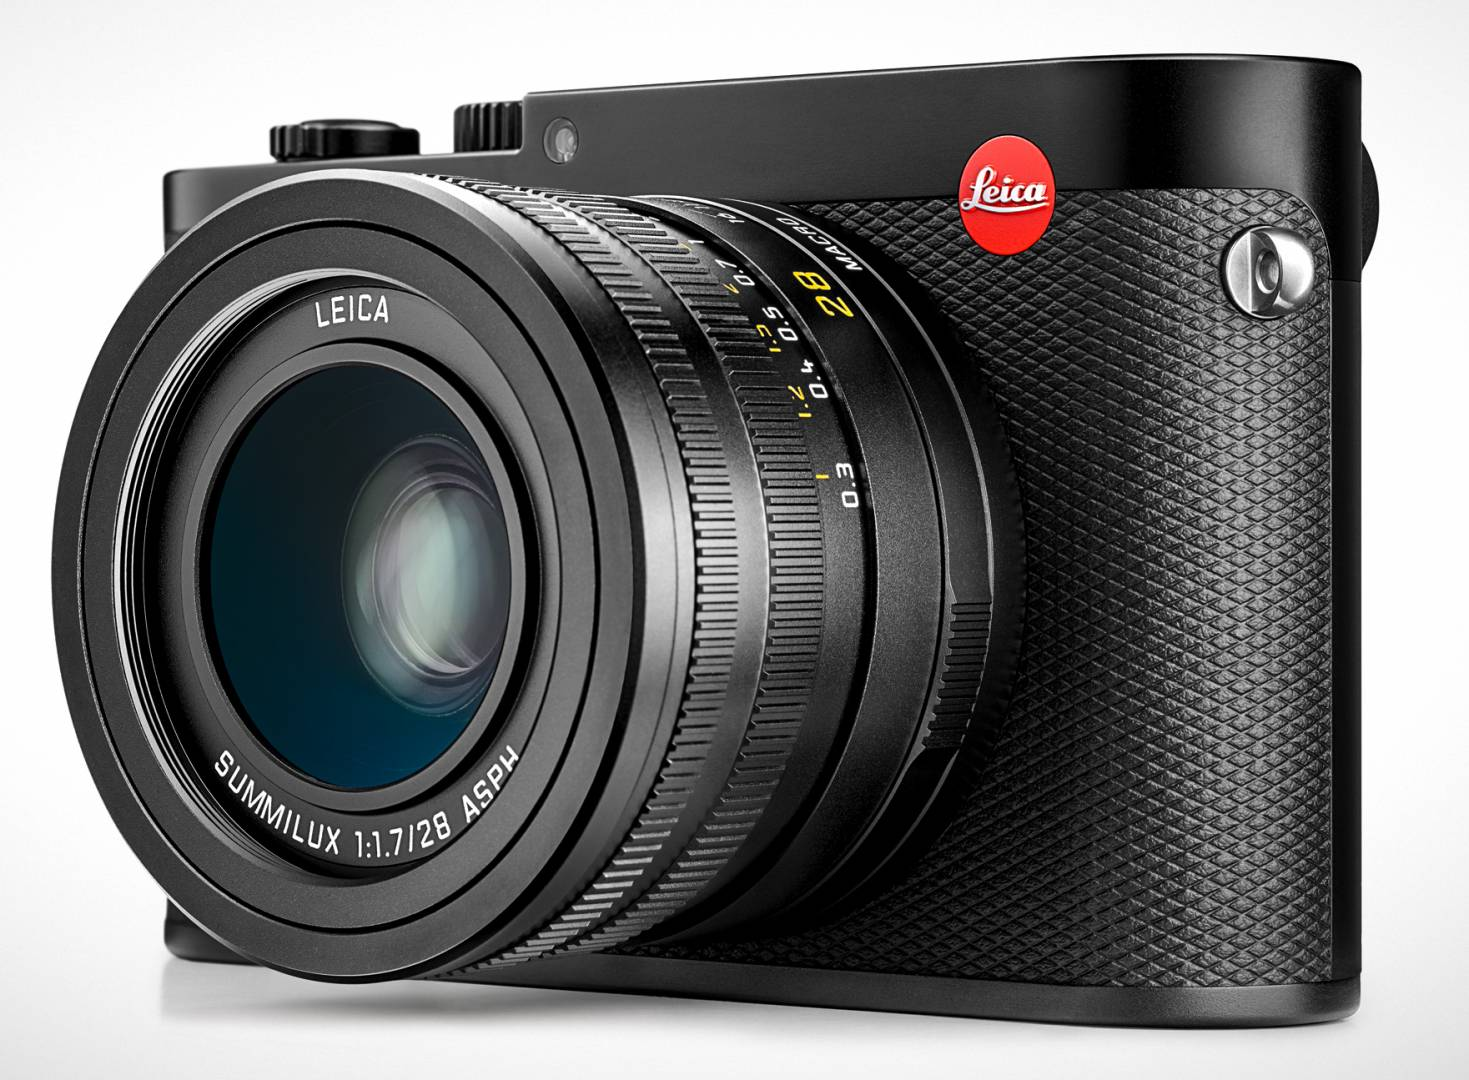 I believe the Q to be Leica's most successful fixed-lens camera. It got to places other Leicas have never reached in terms of admiration, desirability and functinality. The attention to detail, including the invenious macro setting on the 28mm lens, is outstanding.